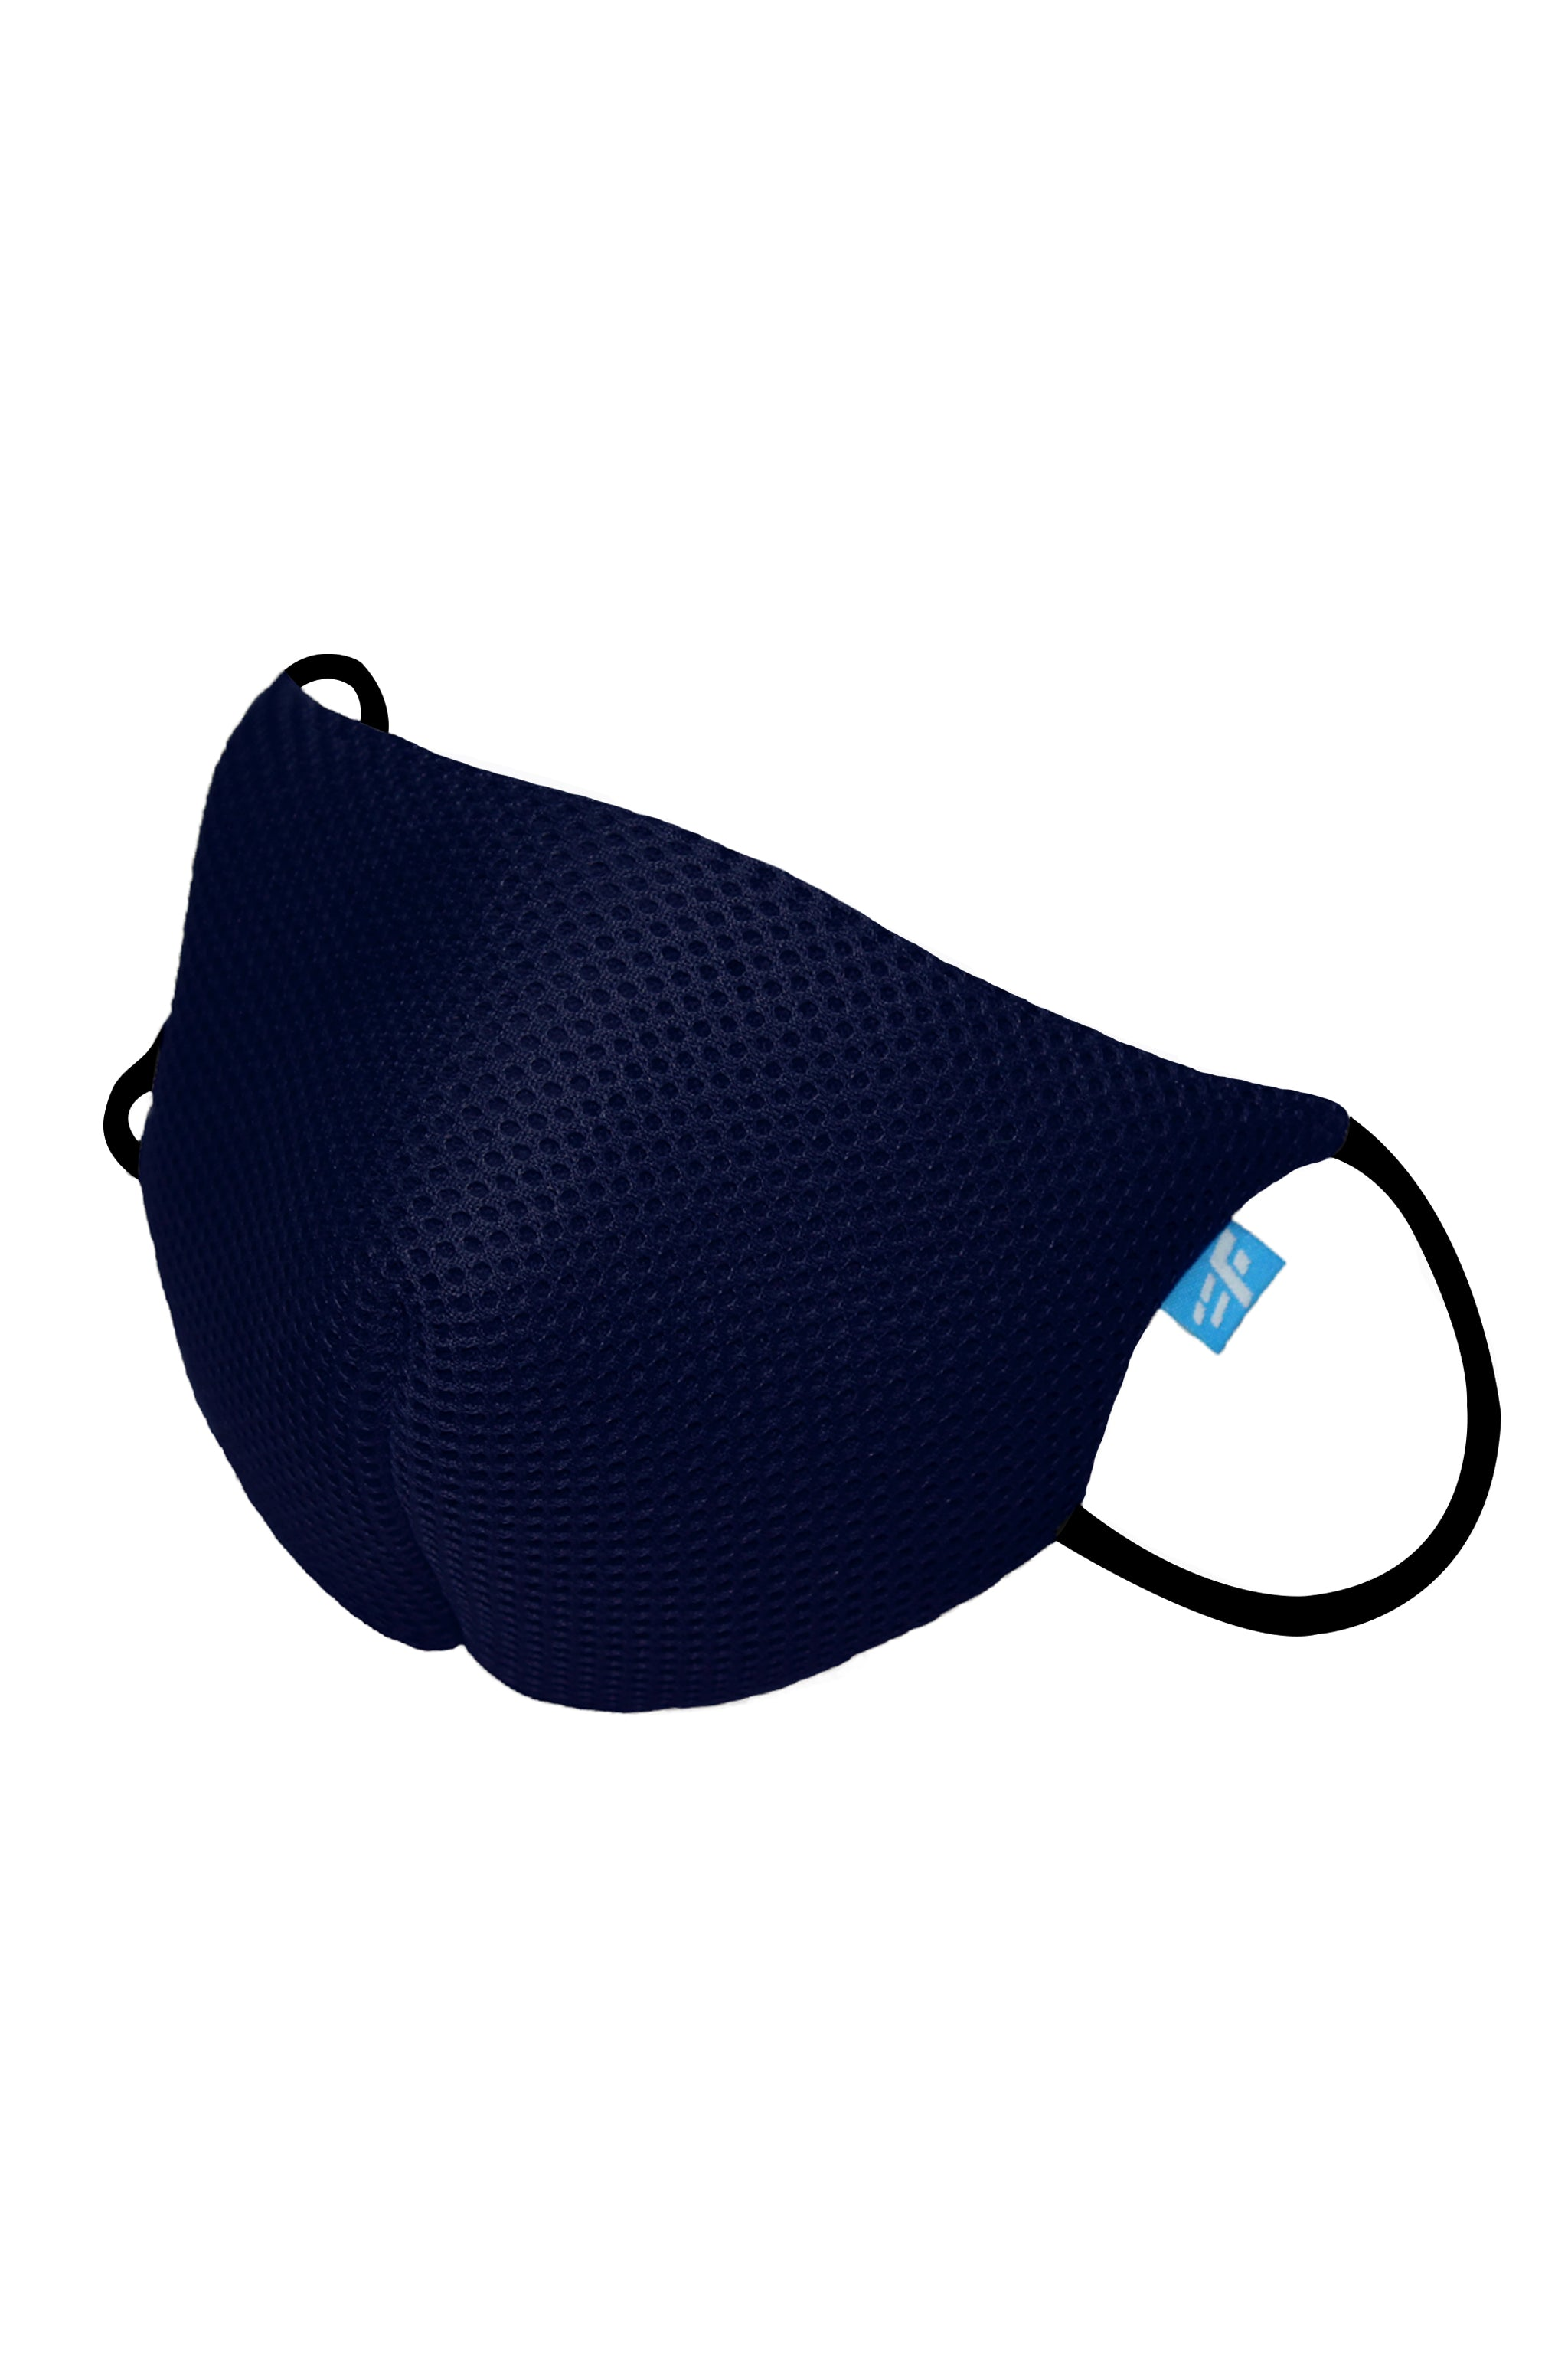 F Gear Coroguard F95 Mask Navy Blue Pack of 1 Safeguard 7 layer ISO CE SITRA lab certified >95% Bacteria Filtration